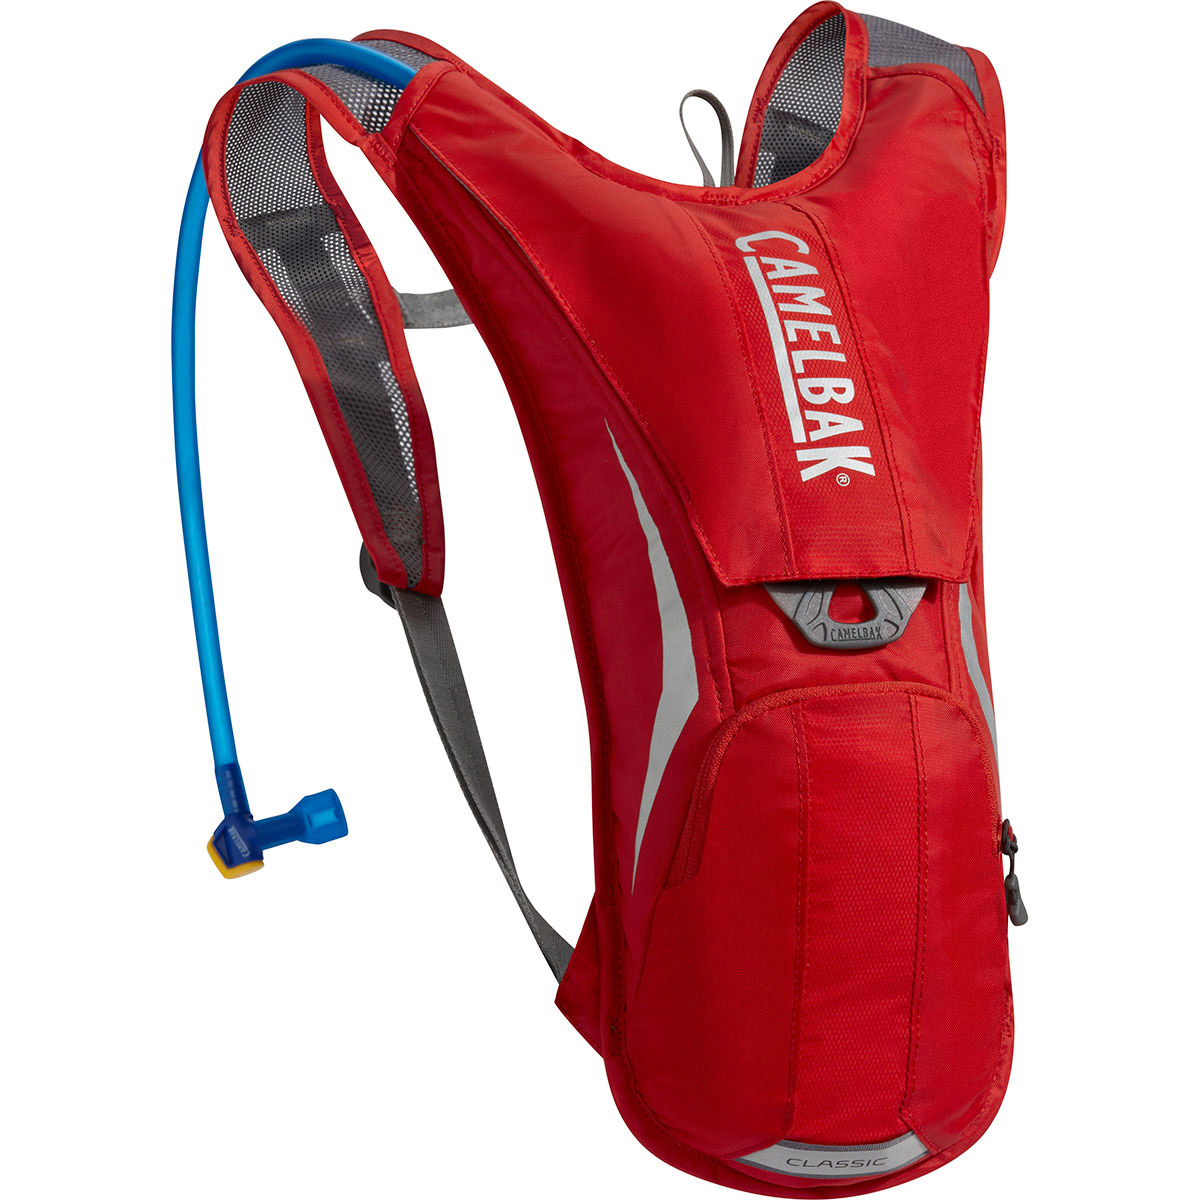 CamelBak Classic 70 oz Hydration Pack Racing Red